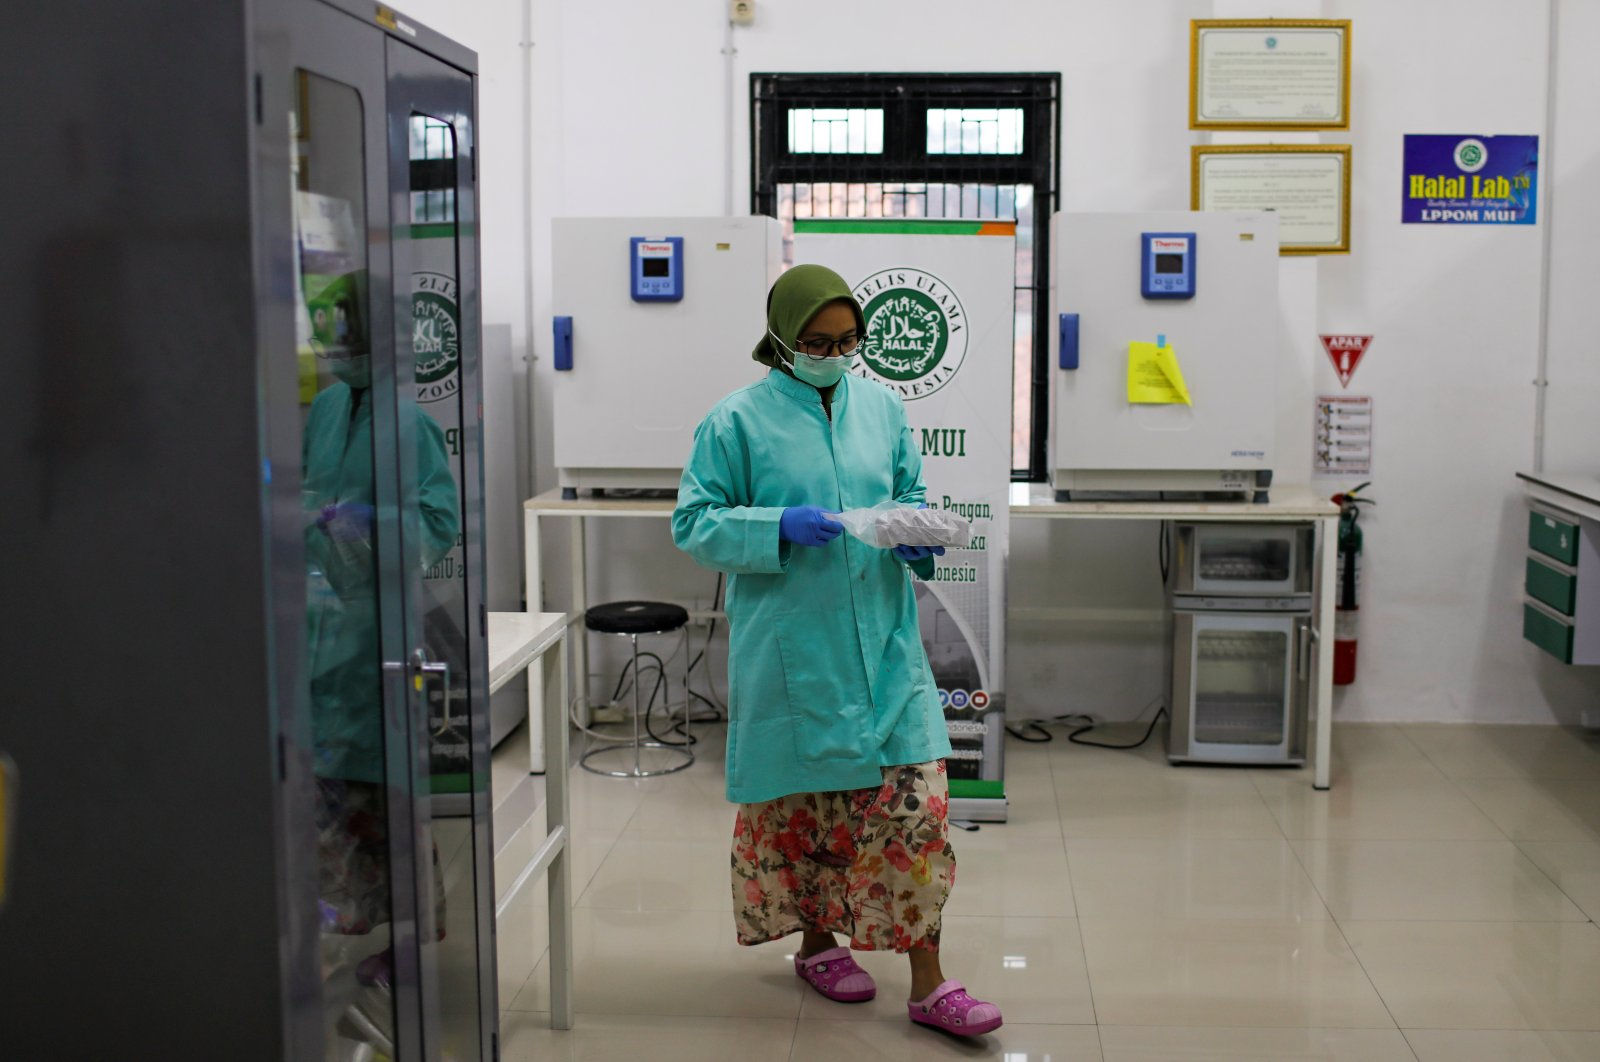 An analyst at the Global Halal Center walks inside a laboratory, where Sinovac's vaccine for the coronavirus disease (COVID-19) was analyzed for halal certification, in Bogor, Indonesia, Jan. 6, 2021. (Reuters Photo)